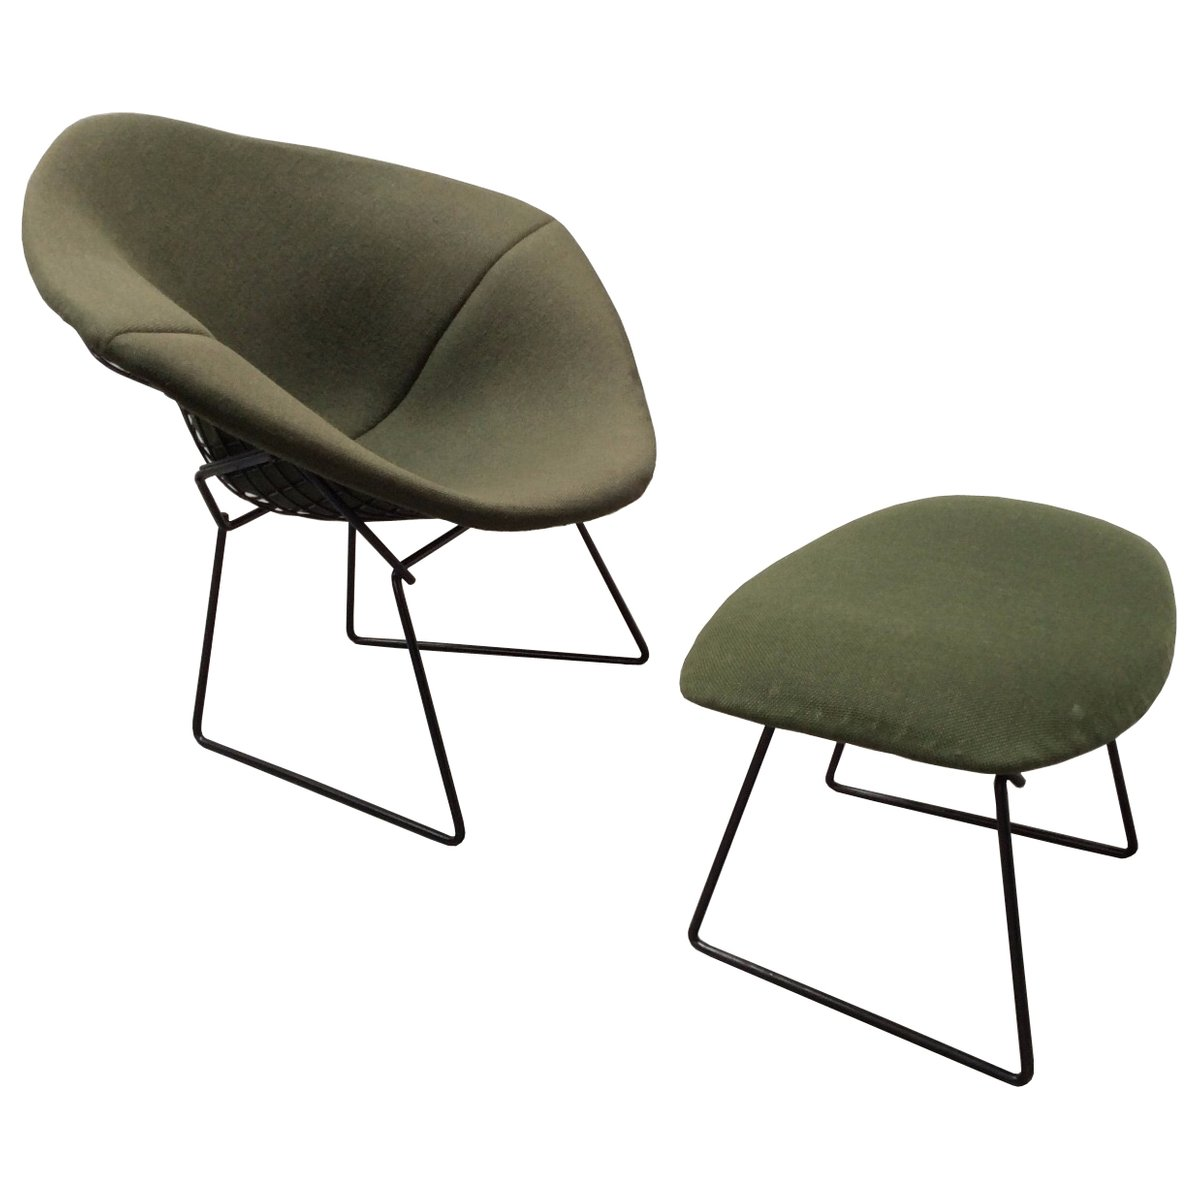 Vintage Diamond Chair And Ottoman By Harry Bertoia For